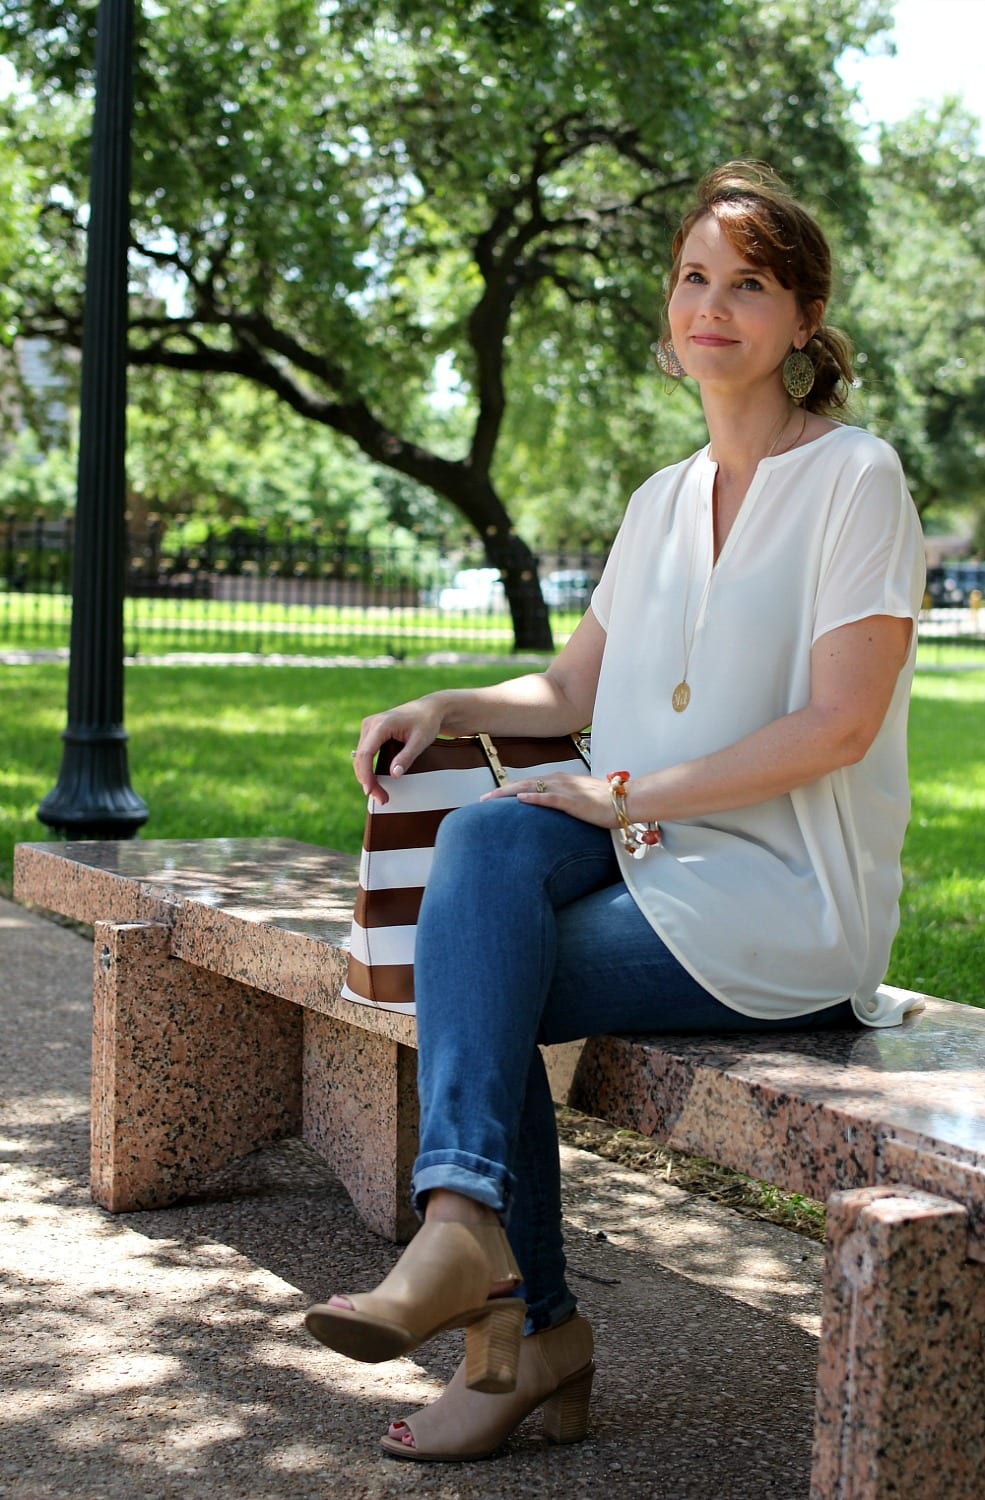 I love tunic tops and they make putting together an outfit I feel good in so easy. This classic tunic from J. Jill is paired with light denim, nude peep toe booties and a striped tote bag.